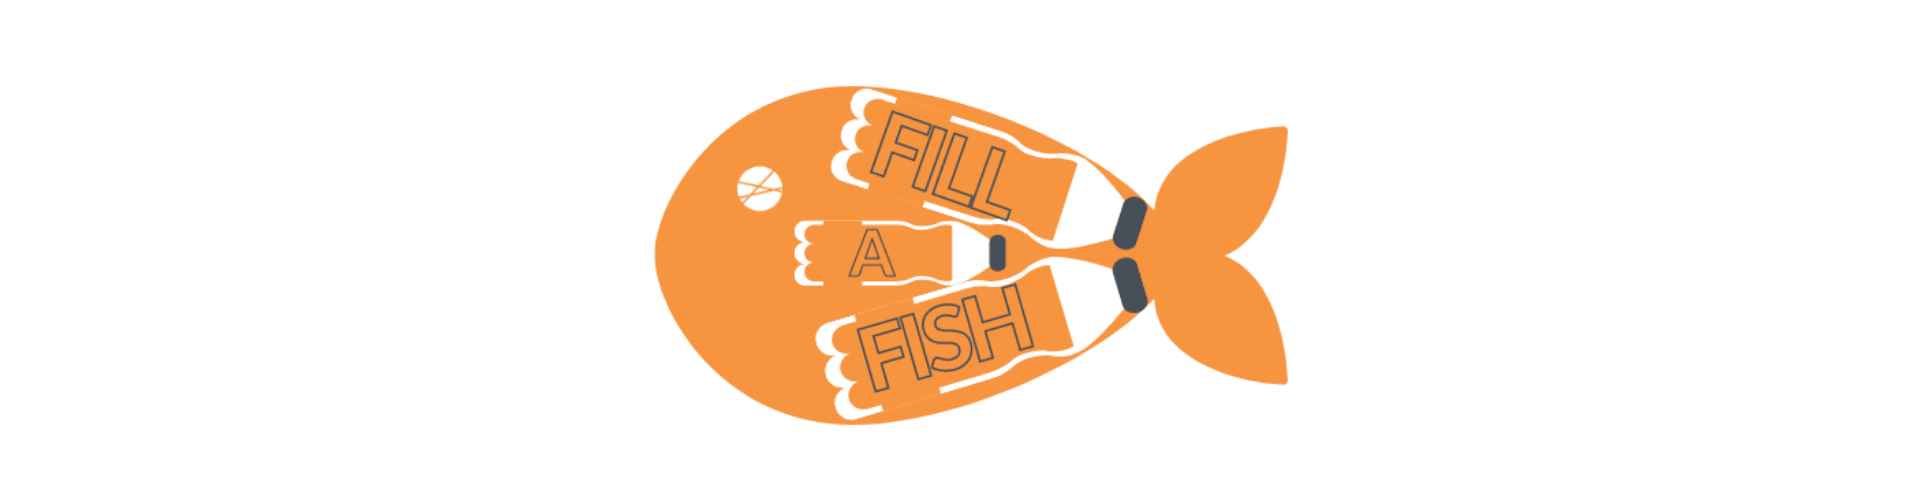 Fill a Fish for web